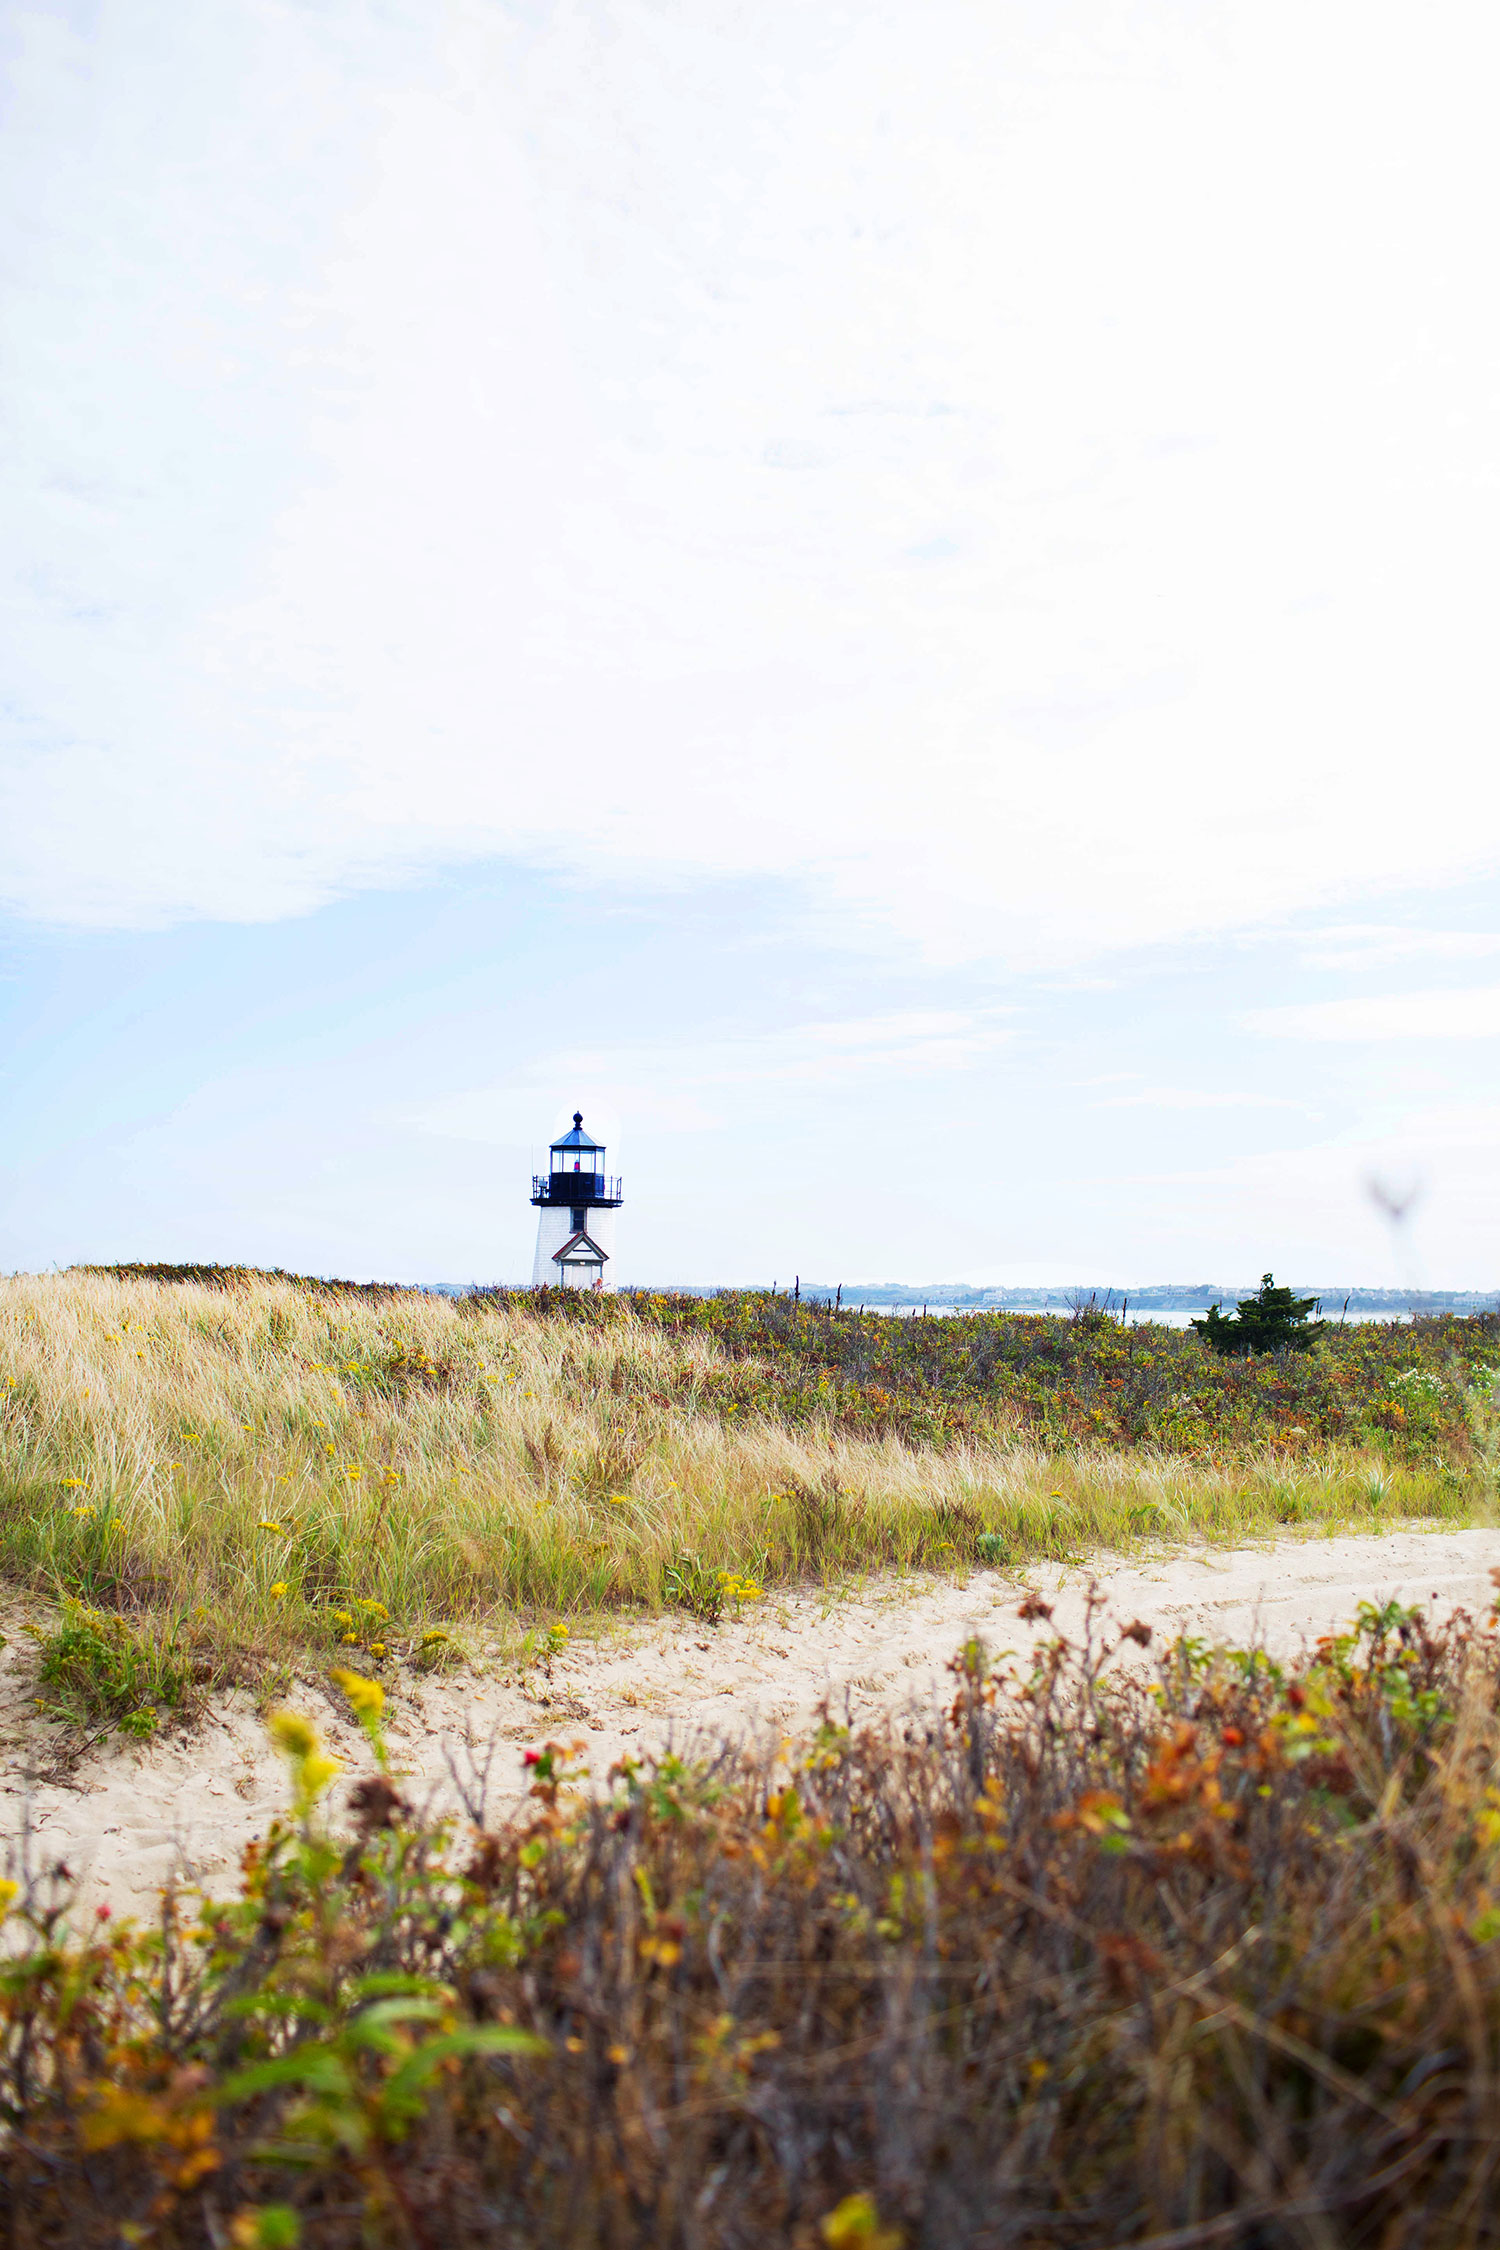 Nantucket-201710-007.jpg